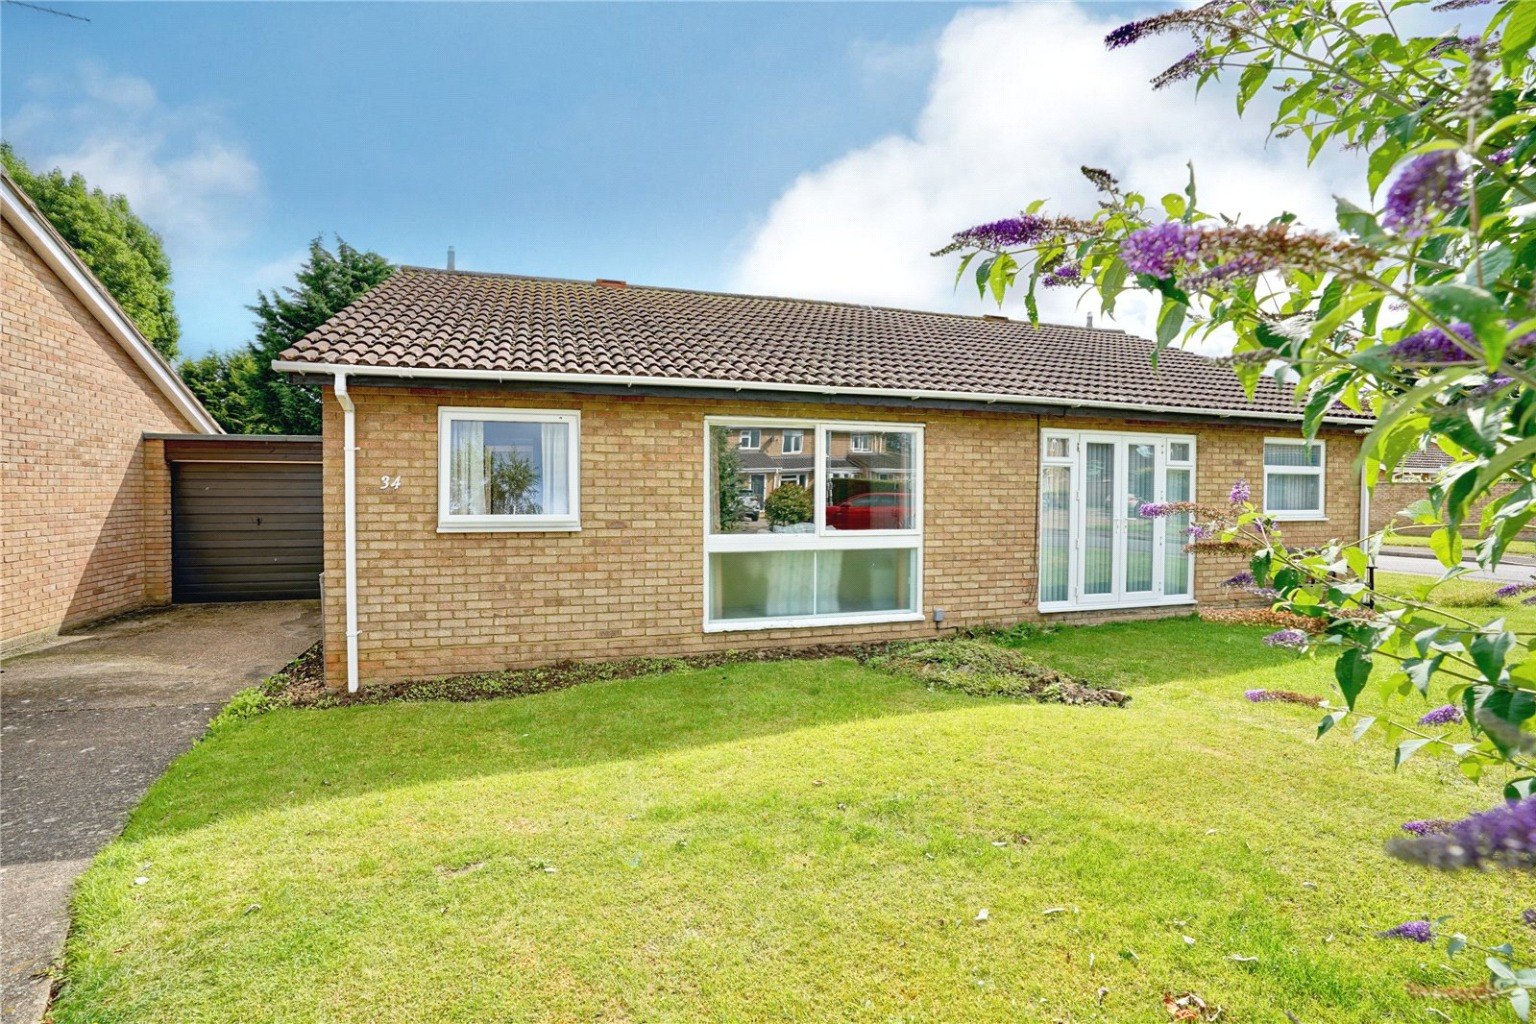 2 bed  for sale in Simpkin Close, St. Neots, PE19